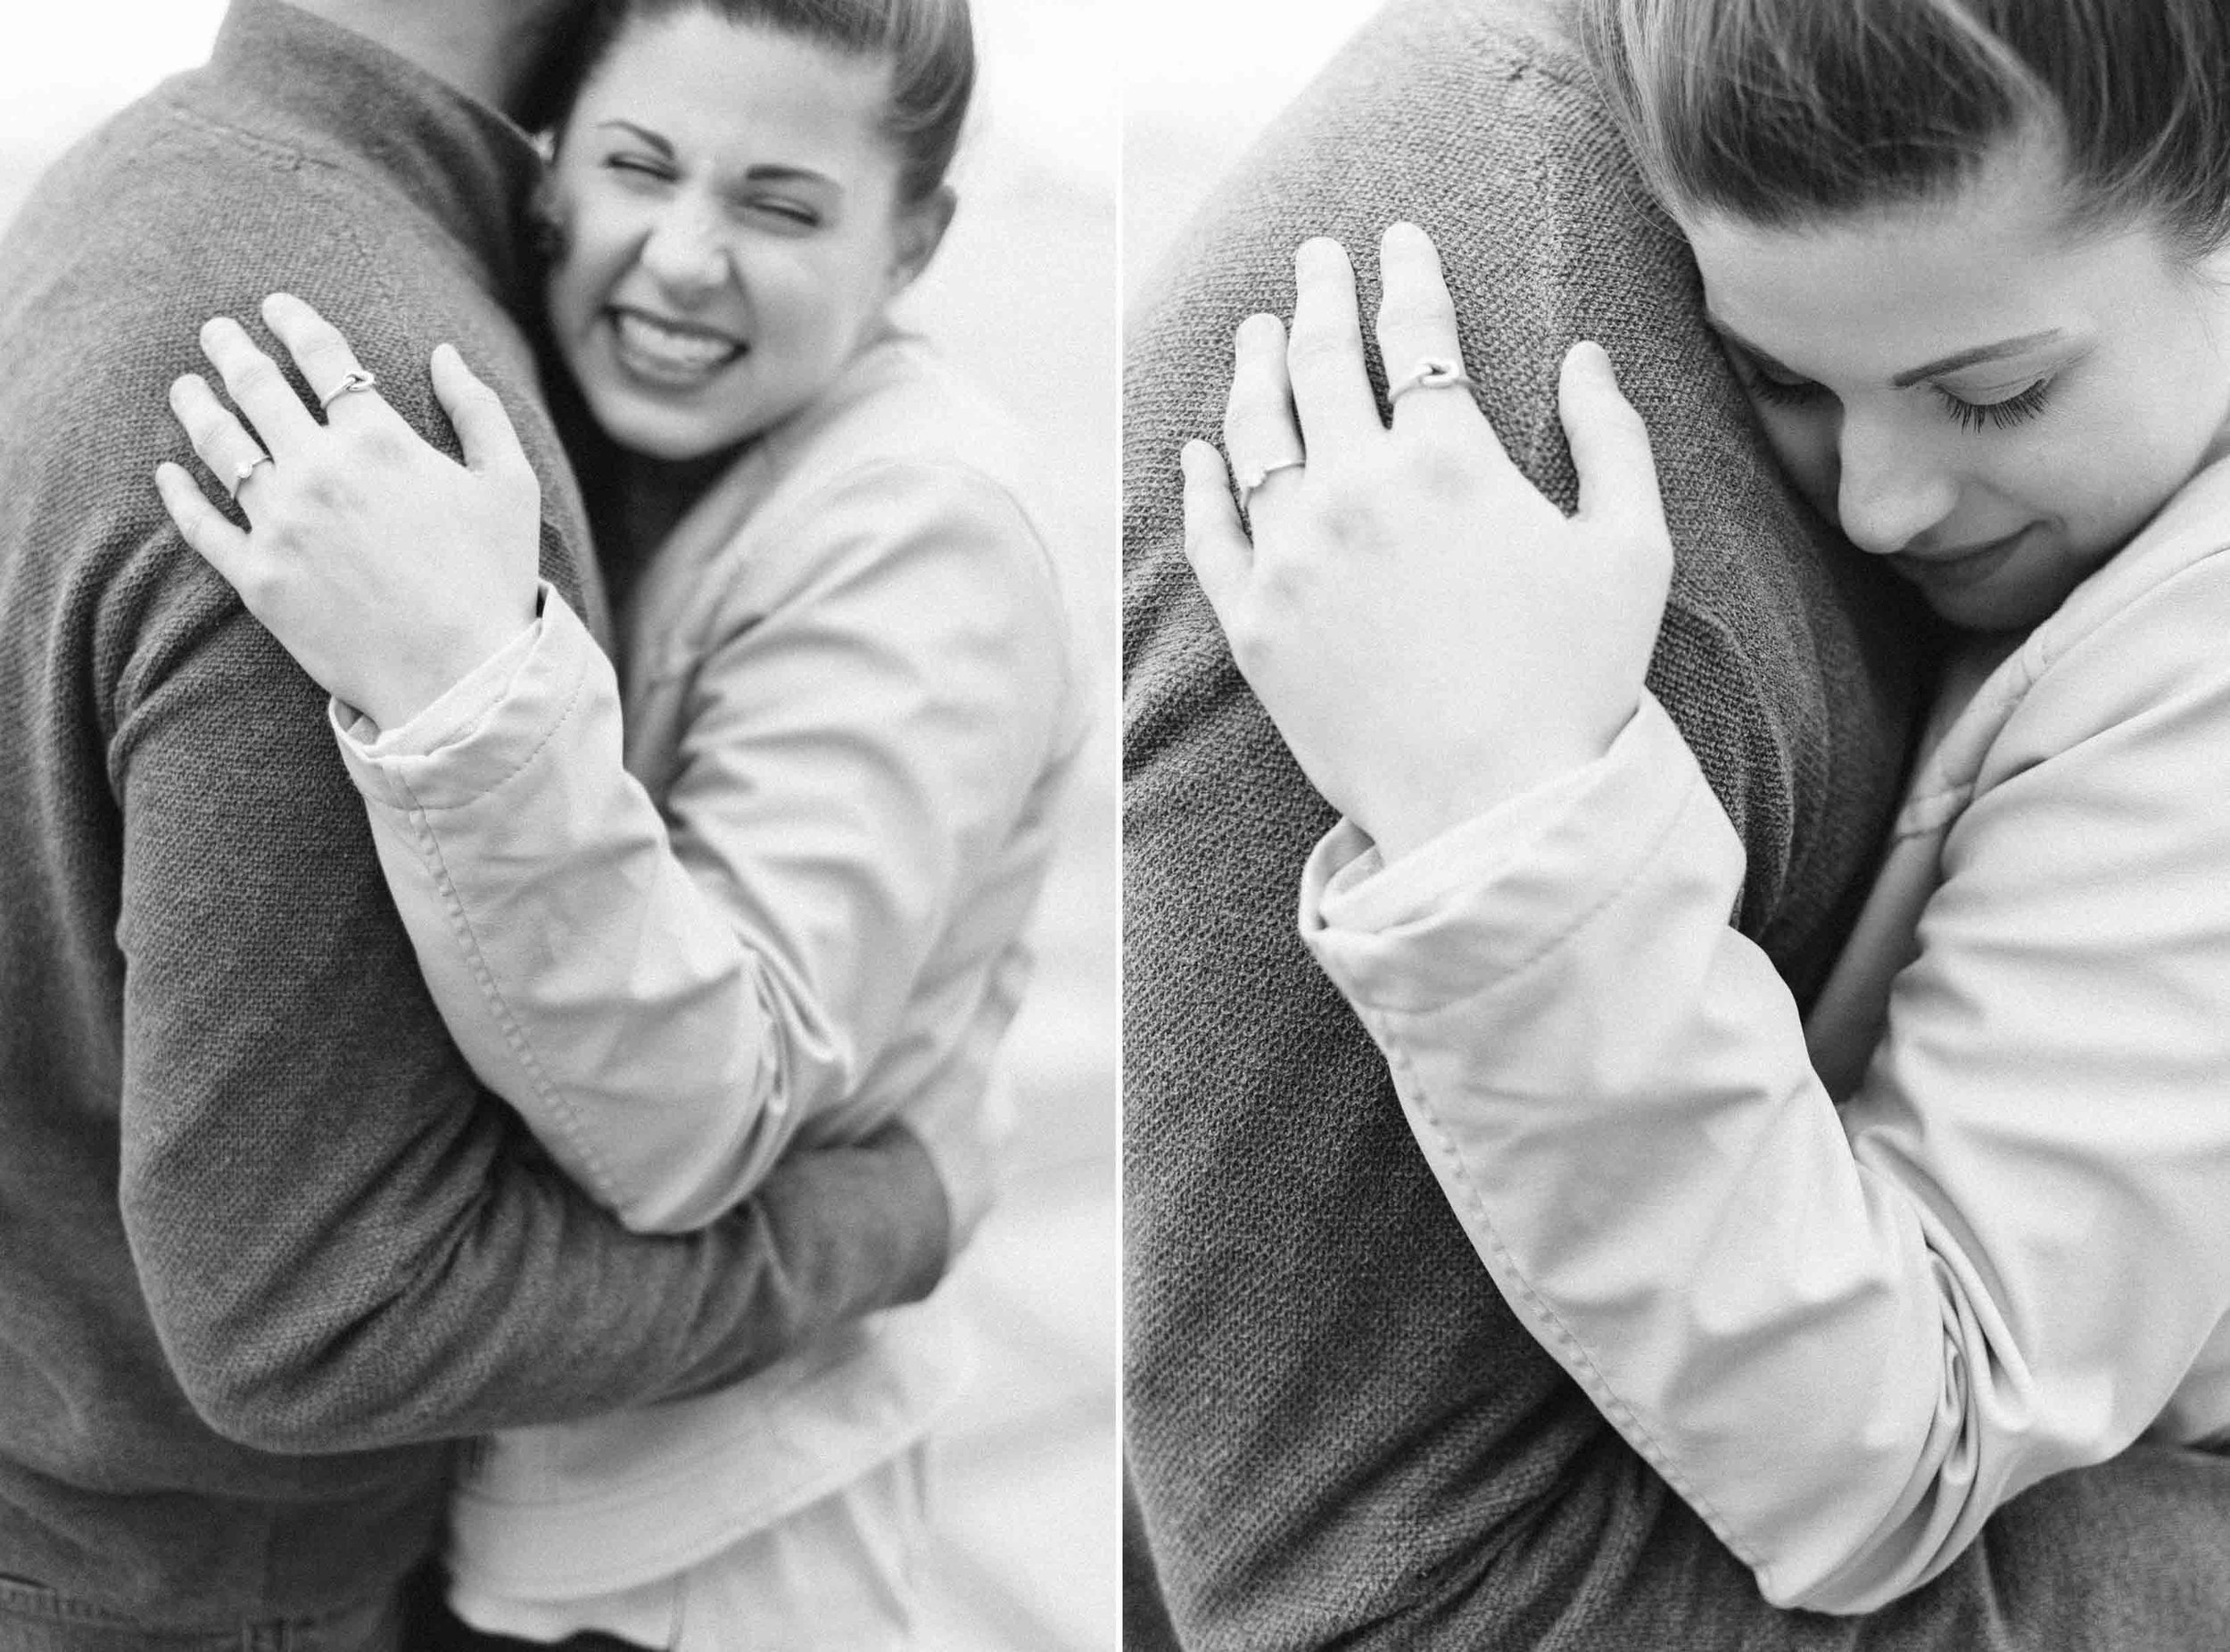 A closeup black and white image of a young Caucasian man and woman as they embrace joyfully.